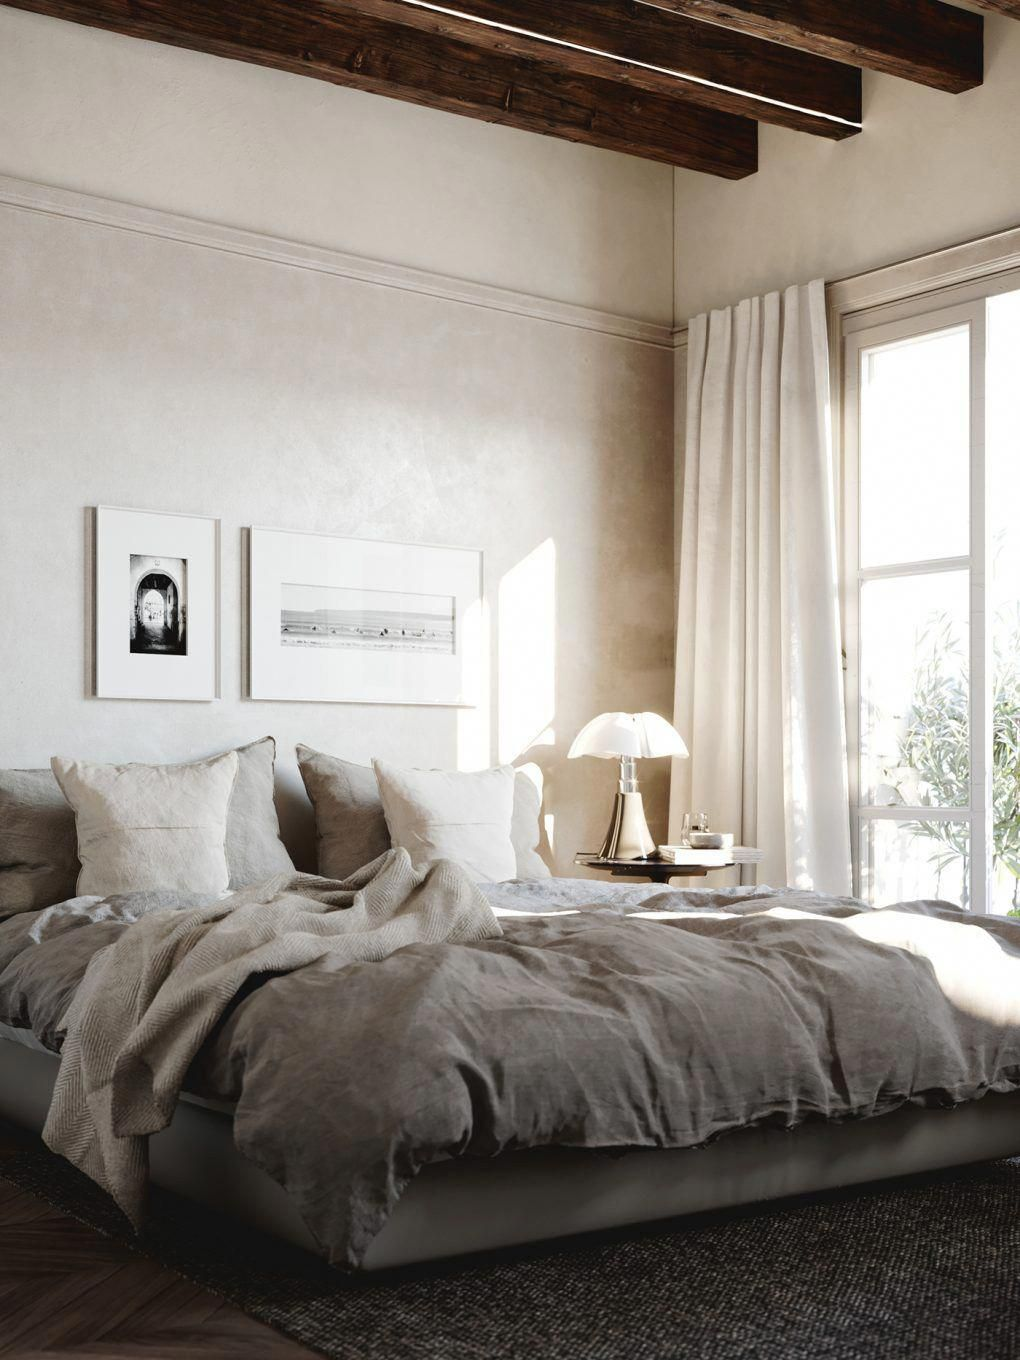 Window side bed  a highlycurated interior where scandinavian functionalism and